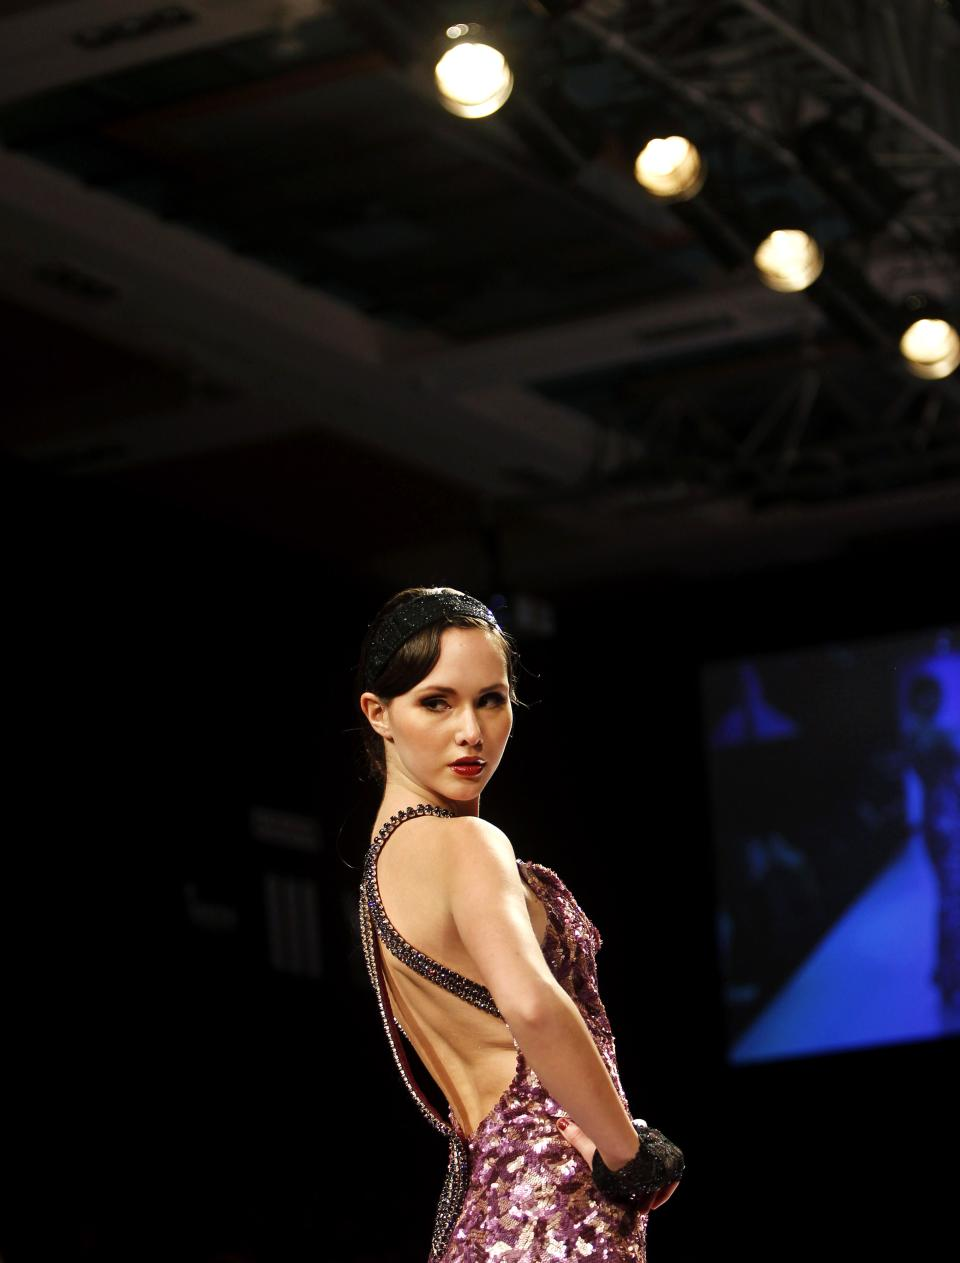 An Indian model displays a creation by Komal Sood during the Lakme Fashion Week in Mumbai, India, Saturday, Aug. 4, 2012. (AP Photo/Rafiq Maqbool)